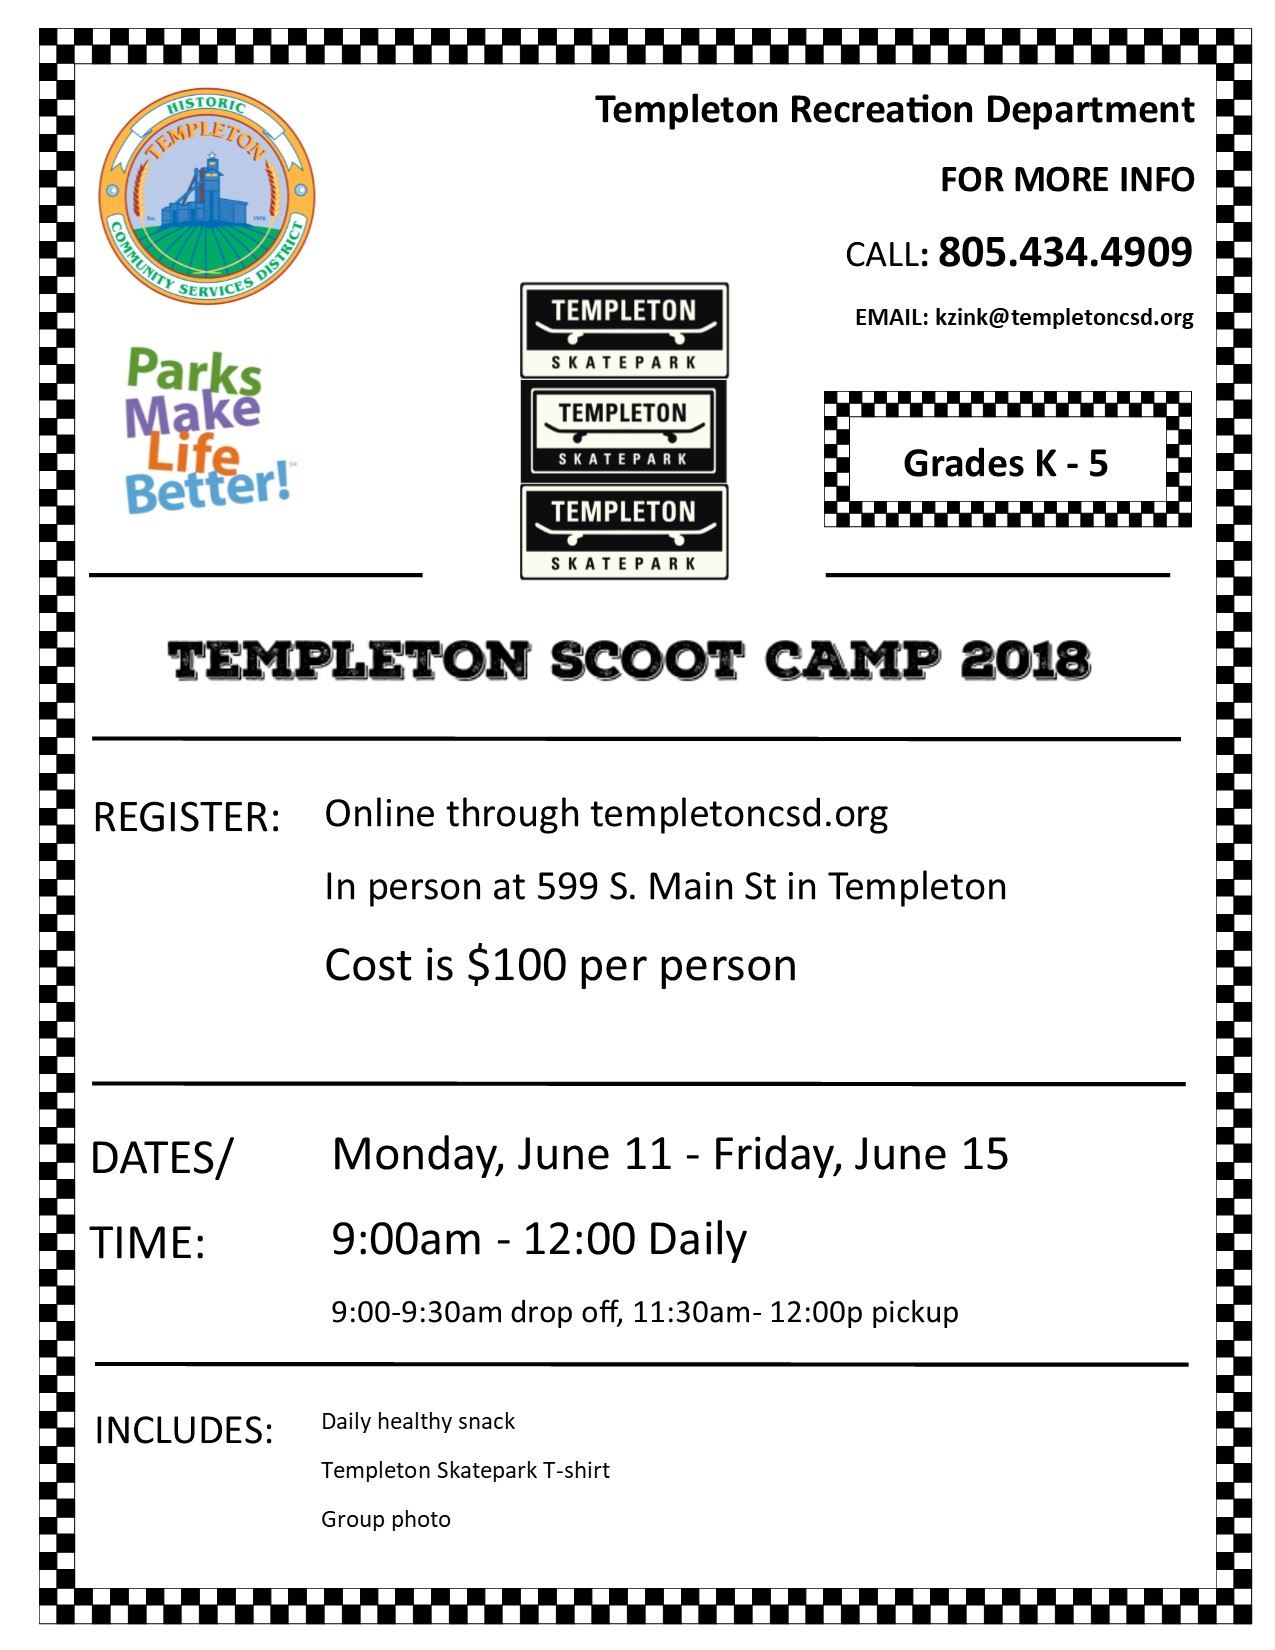 Scoot camp flyer 2018